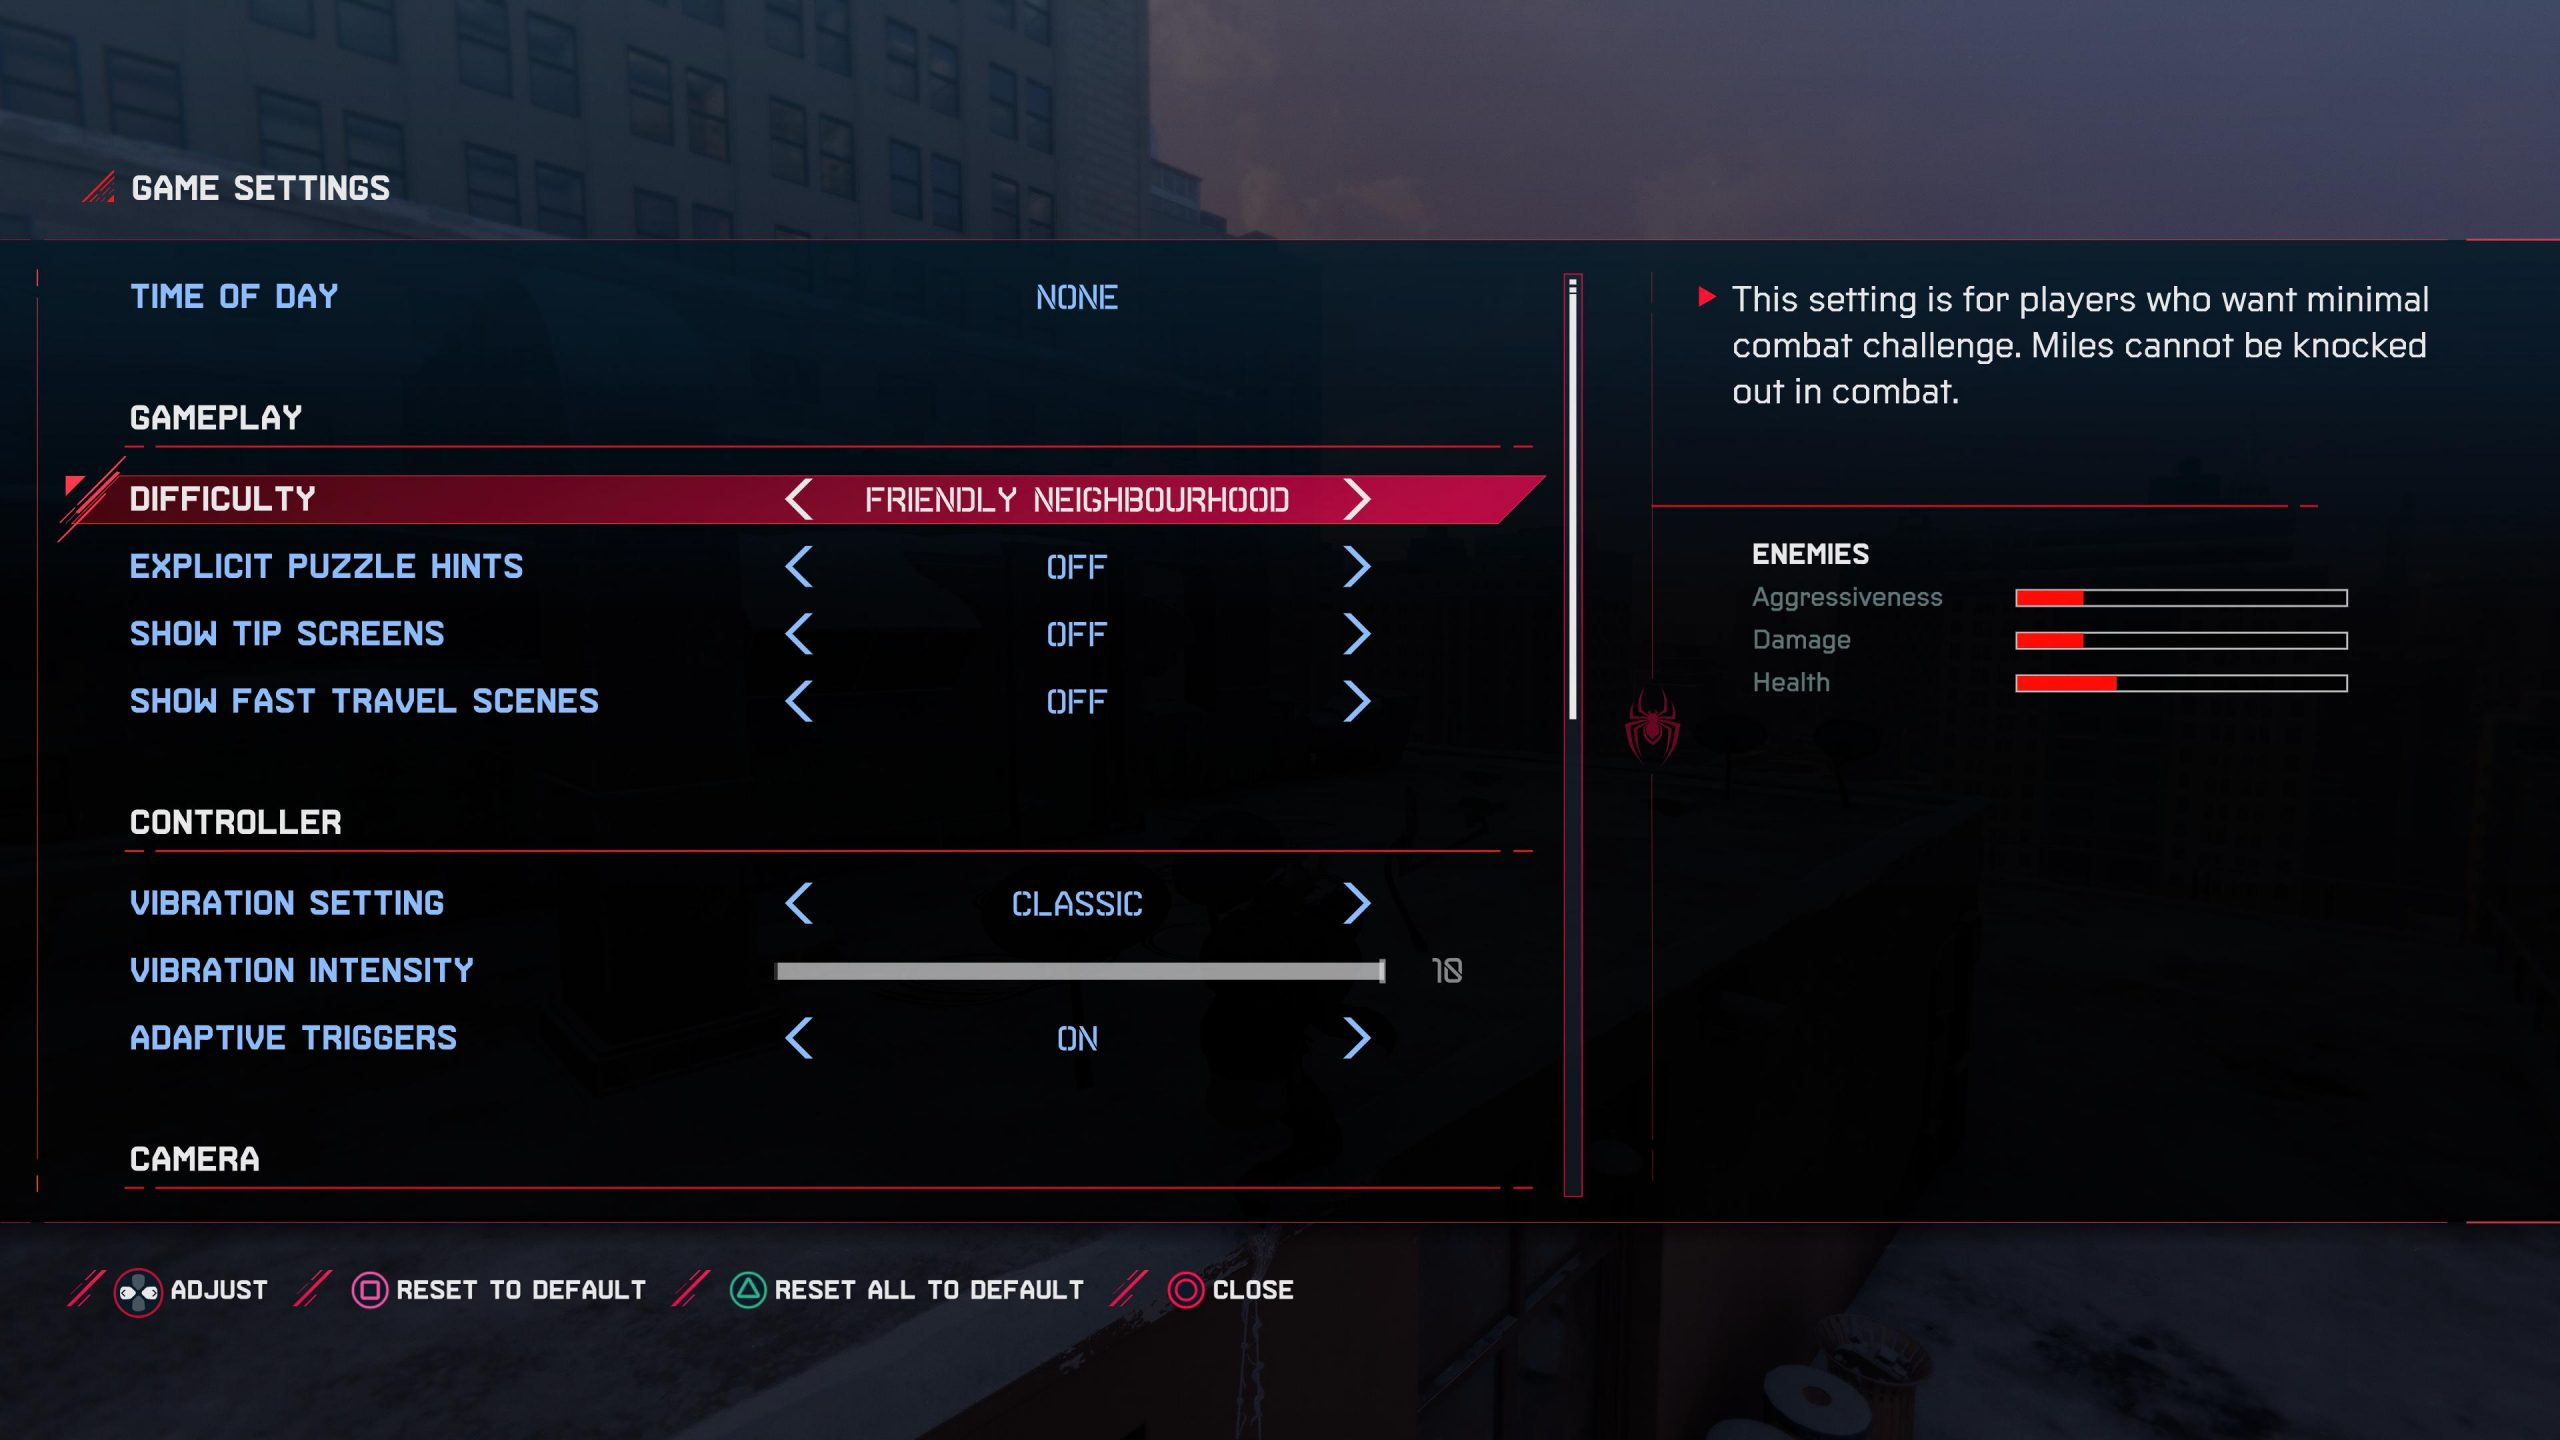 A screenshot showing the difficulty level and its description